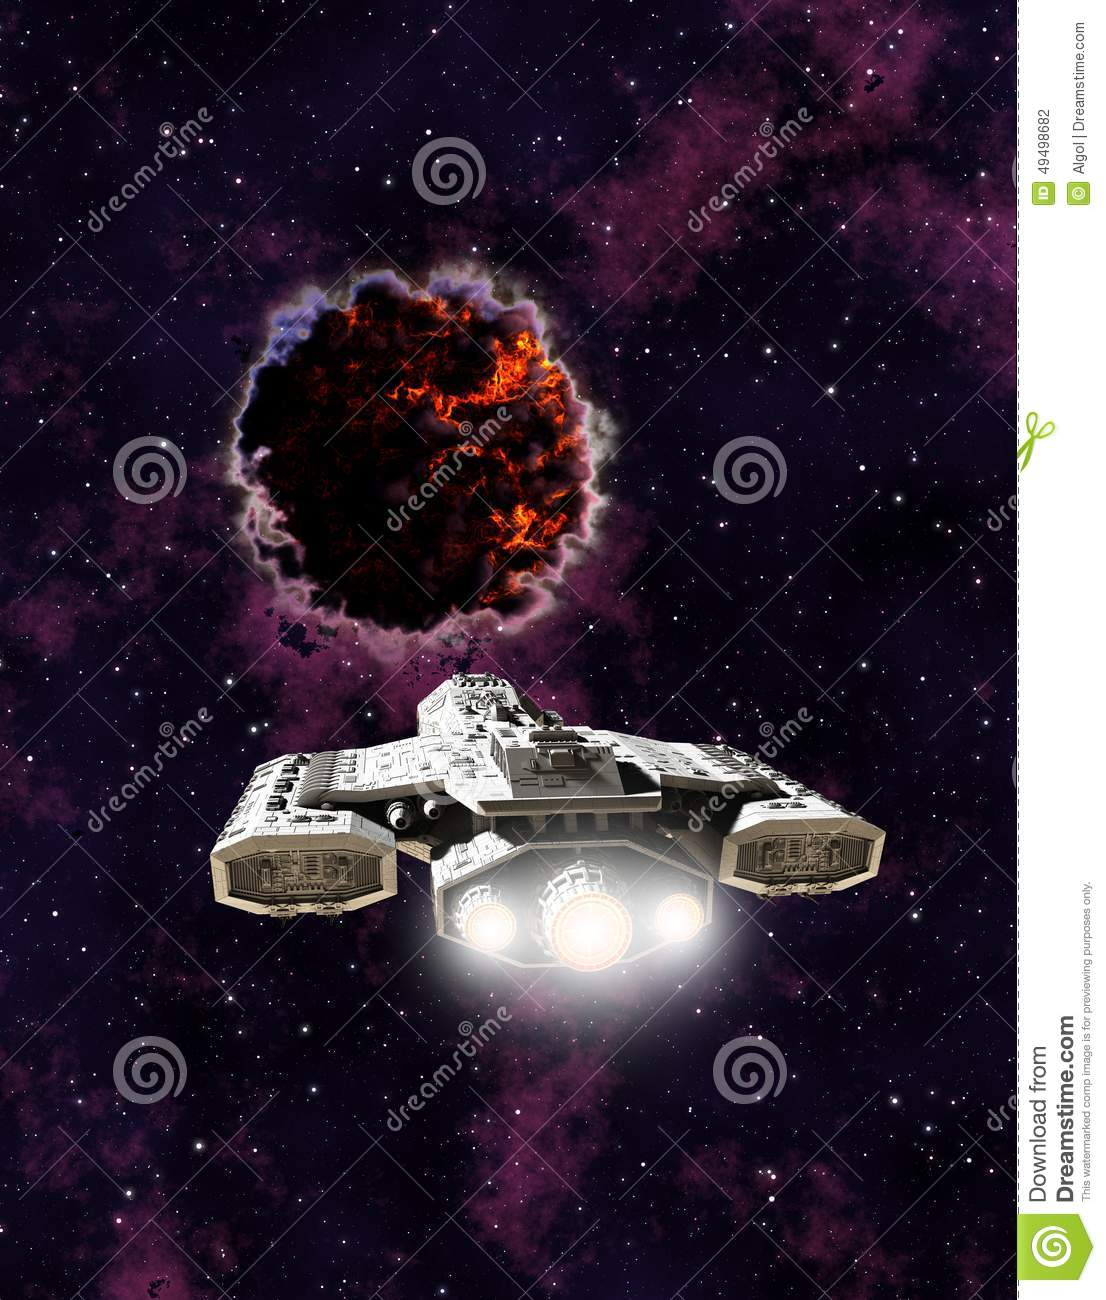 Outer space entity stock illustration image 49498682 for 3d outer space map